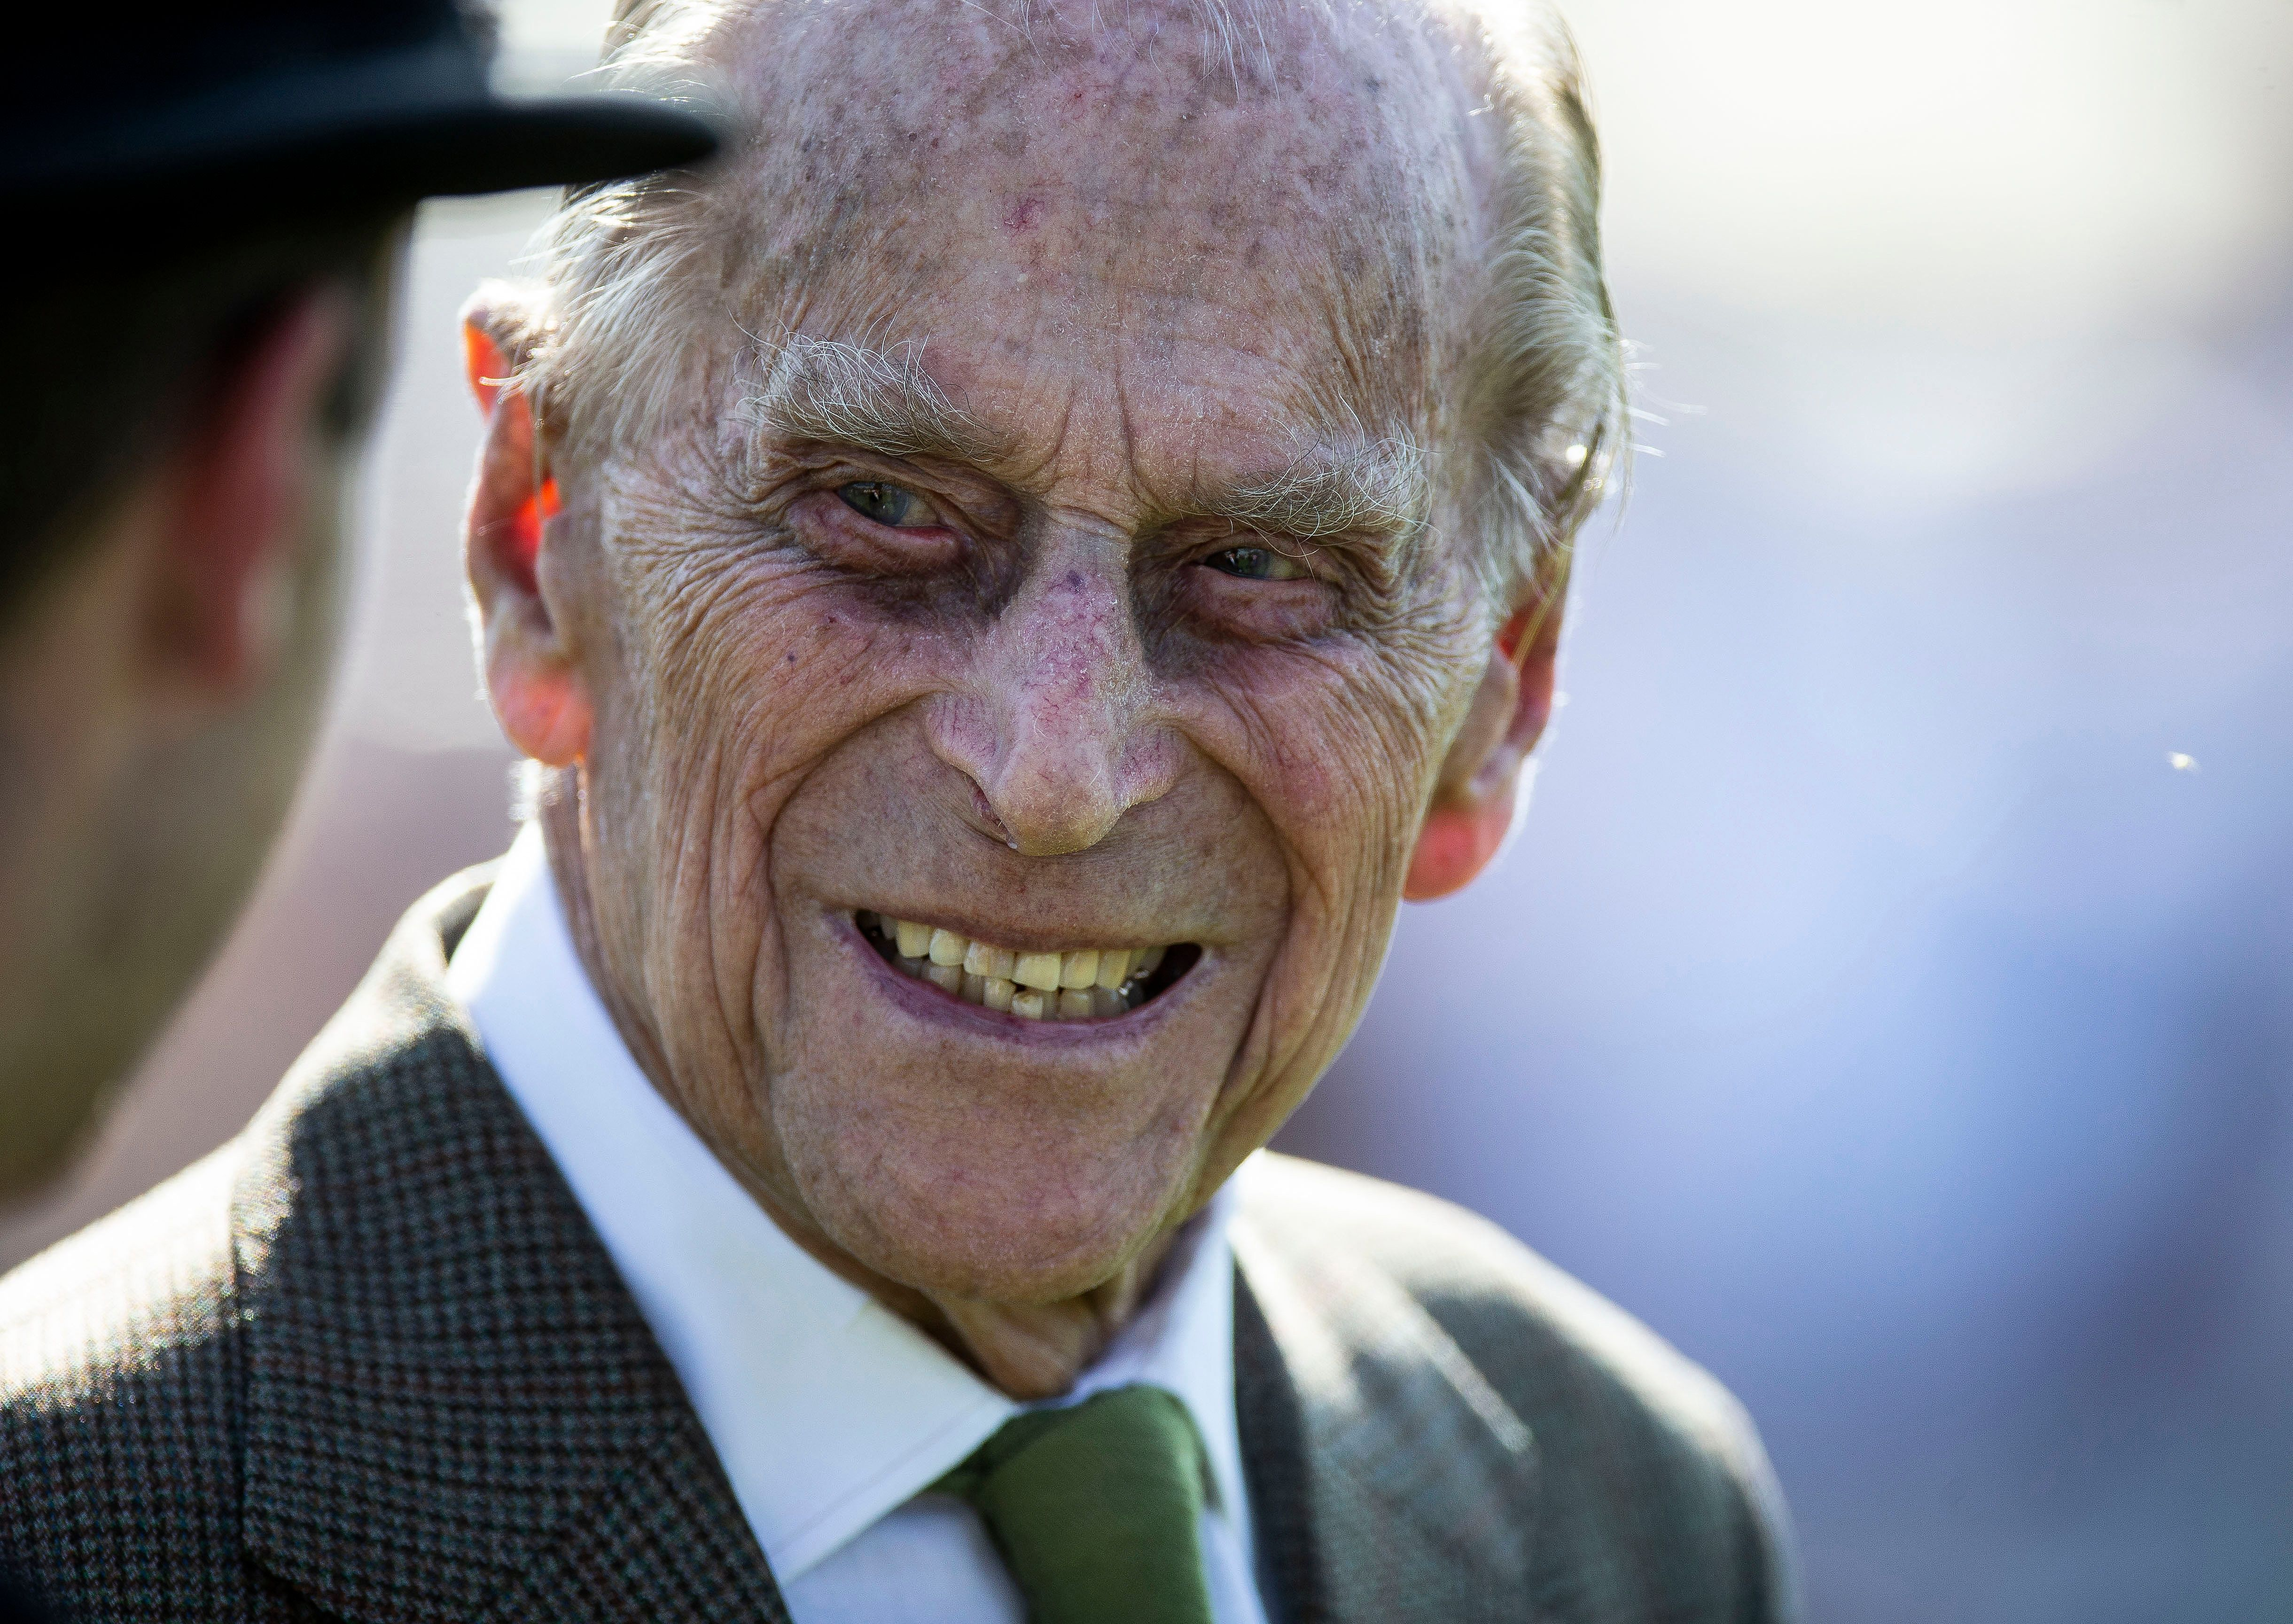 Prince Philip is voluntarily surrendering his driver's license following an accident that injured two women.